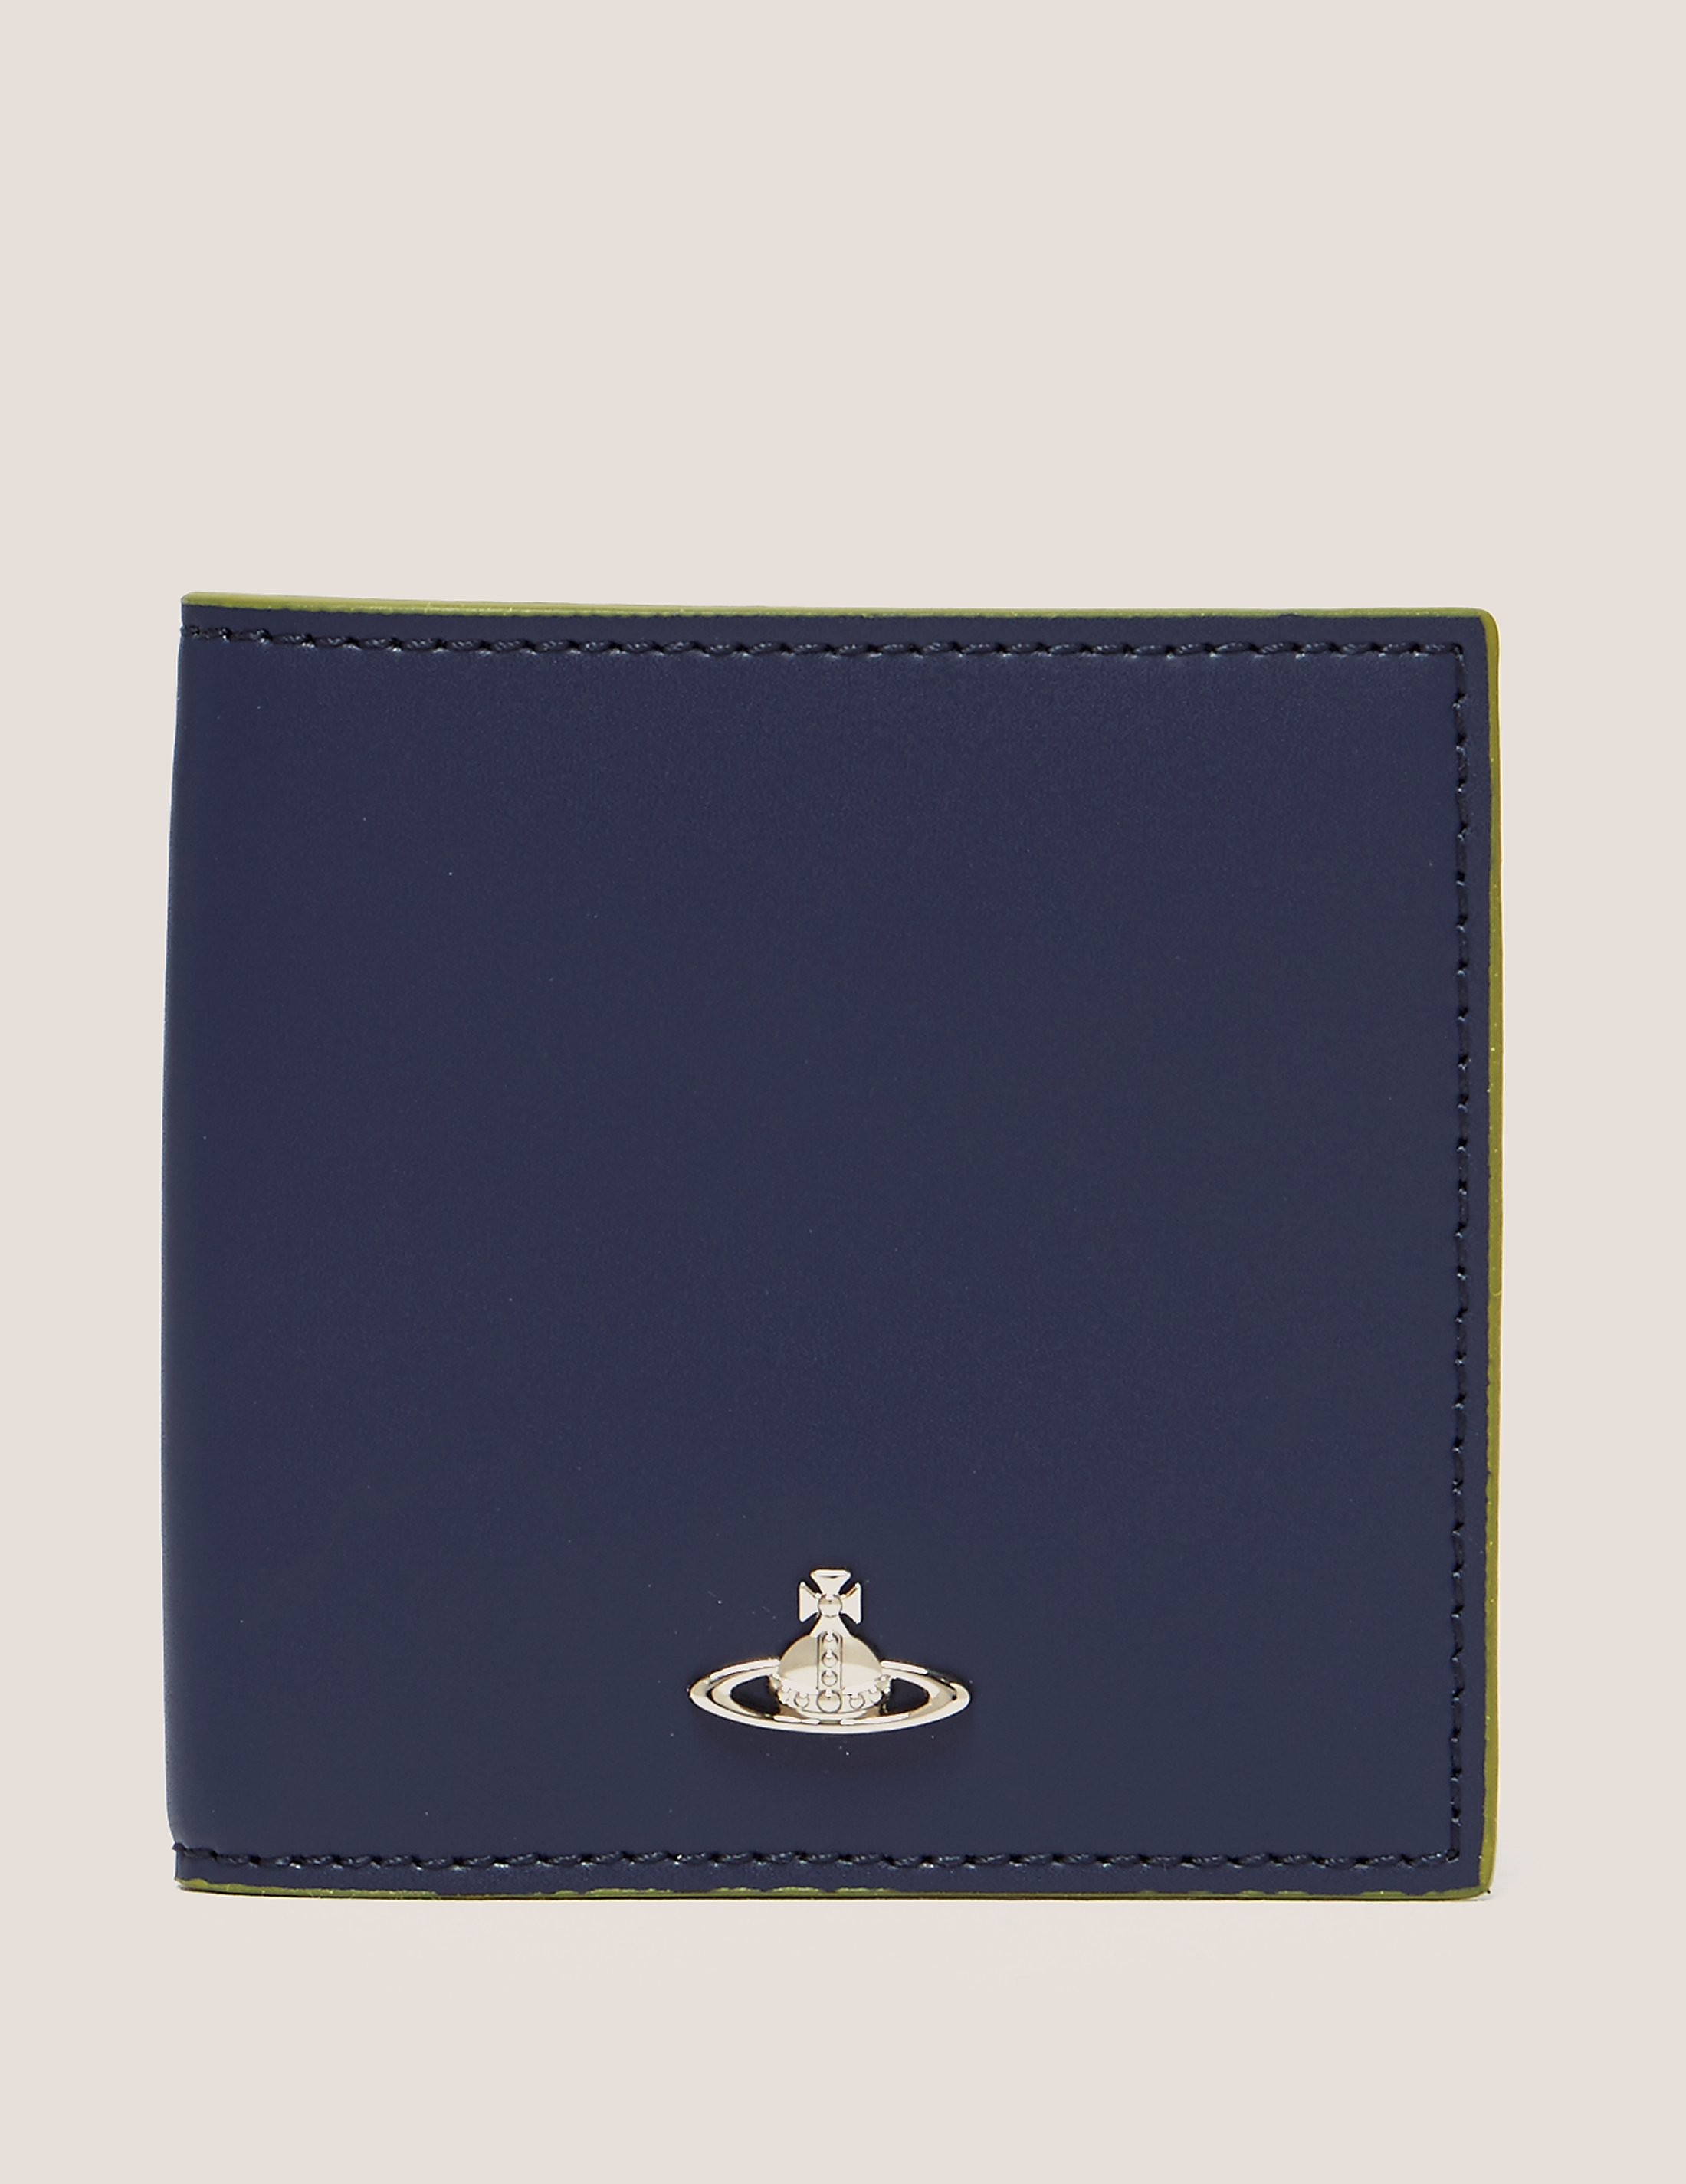 Vivienne Westwood Horizontal Card Holder